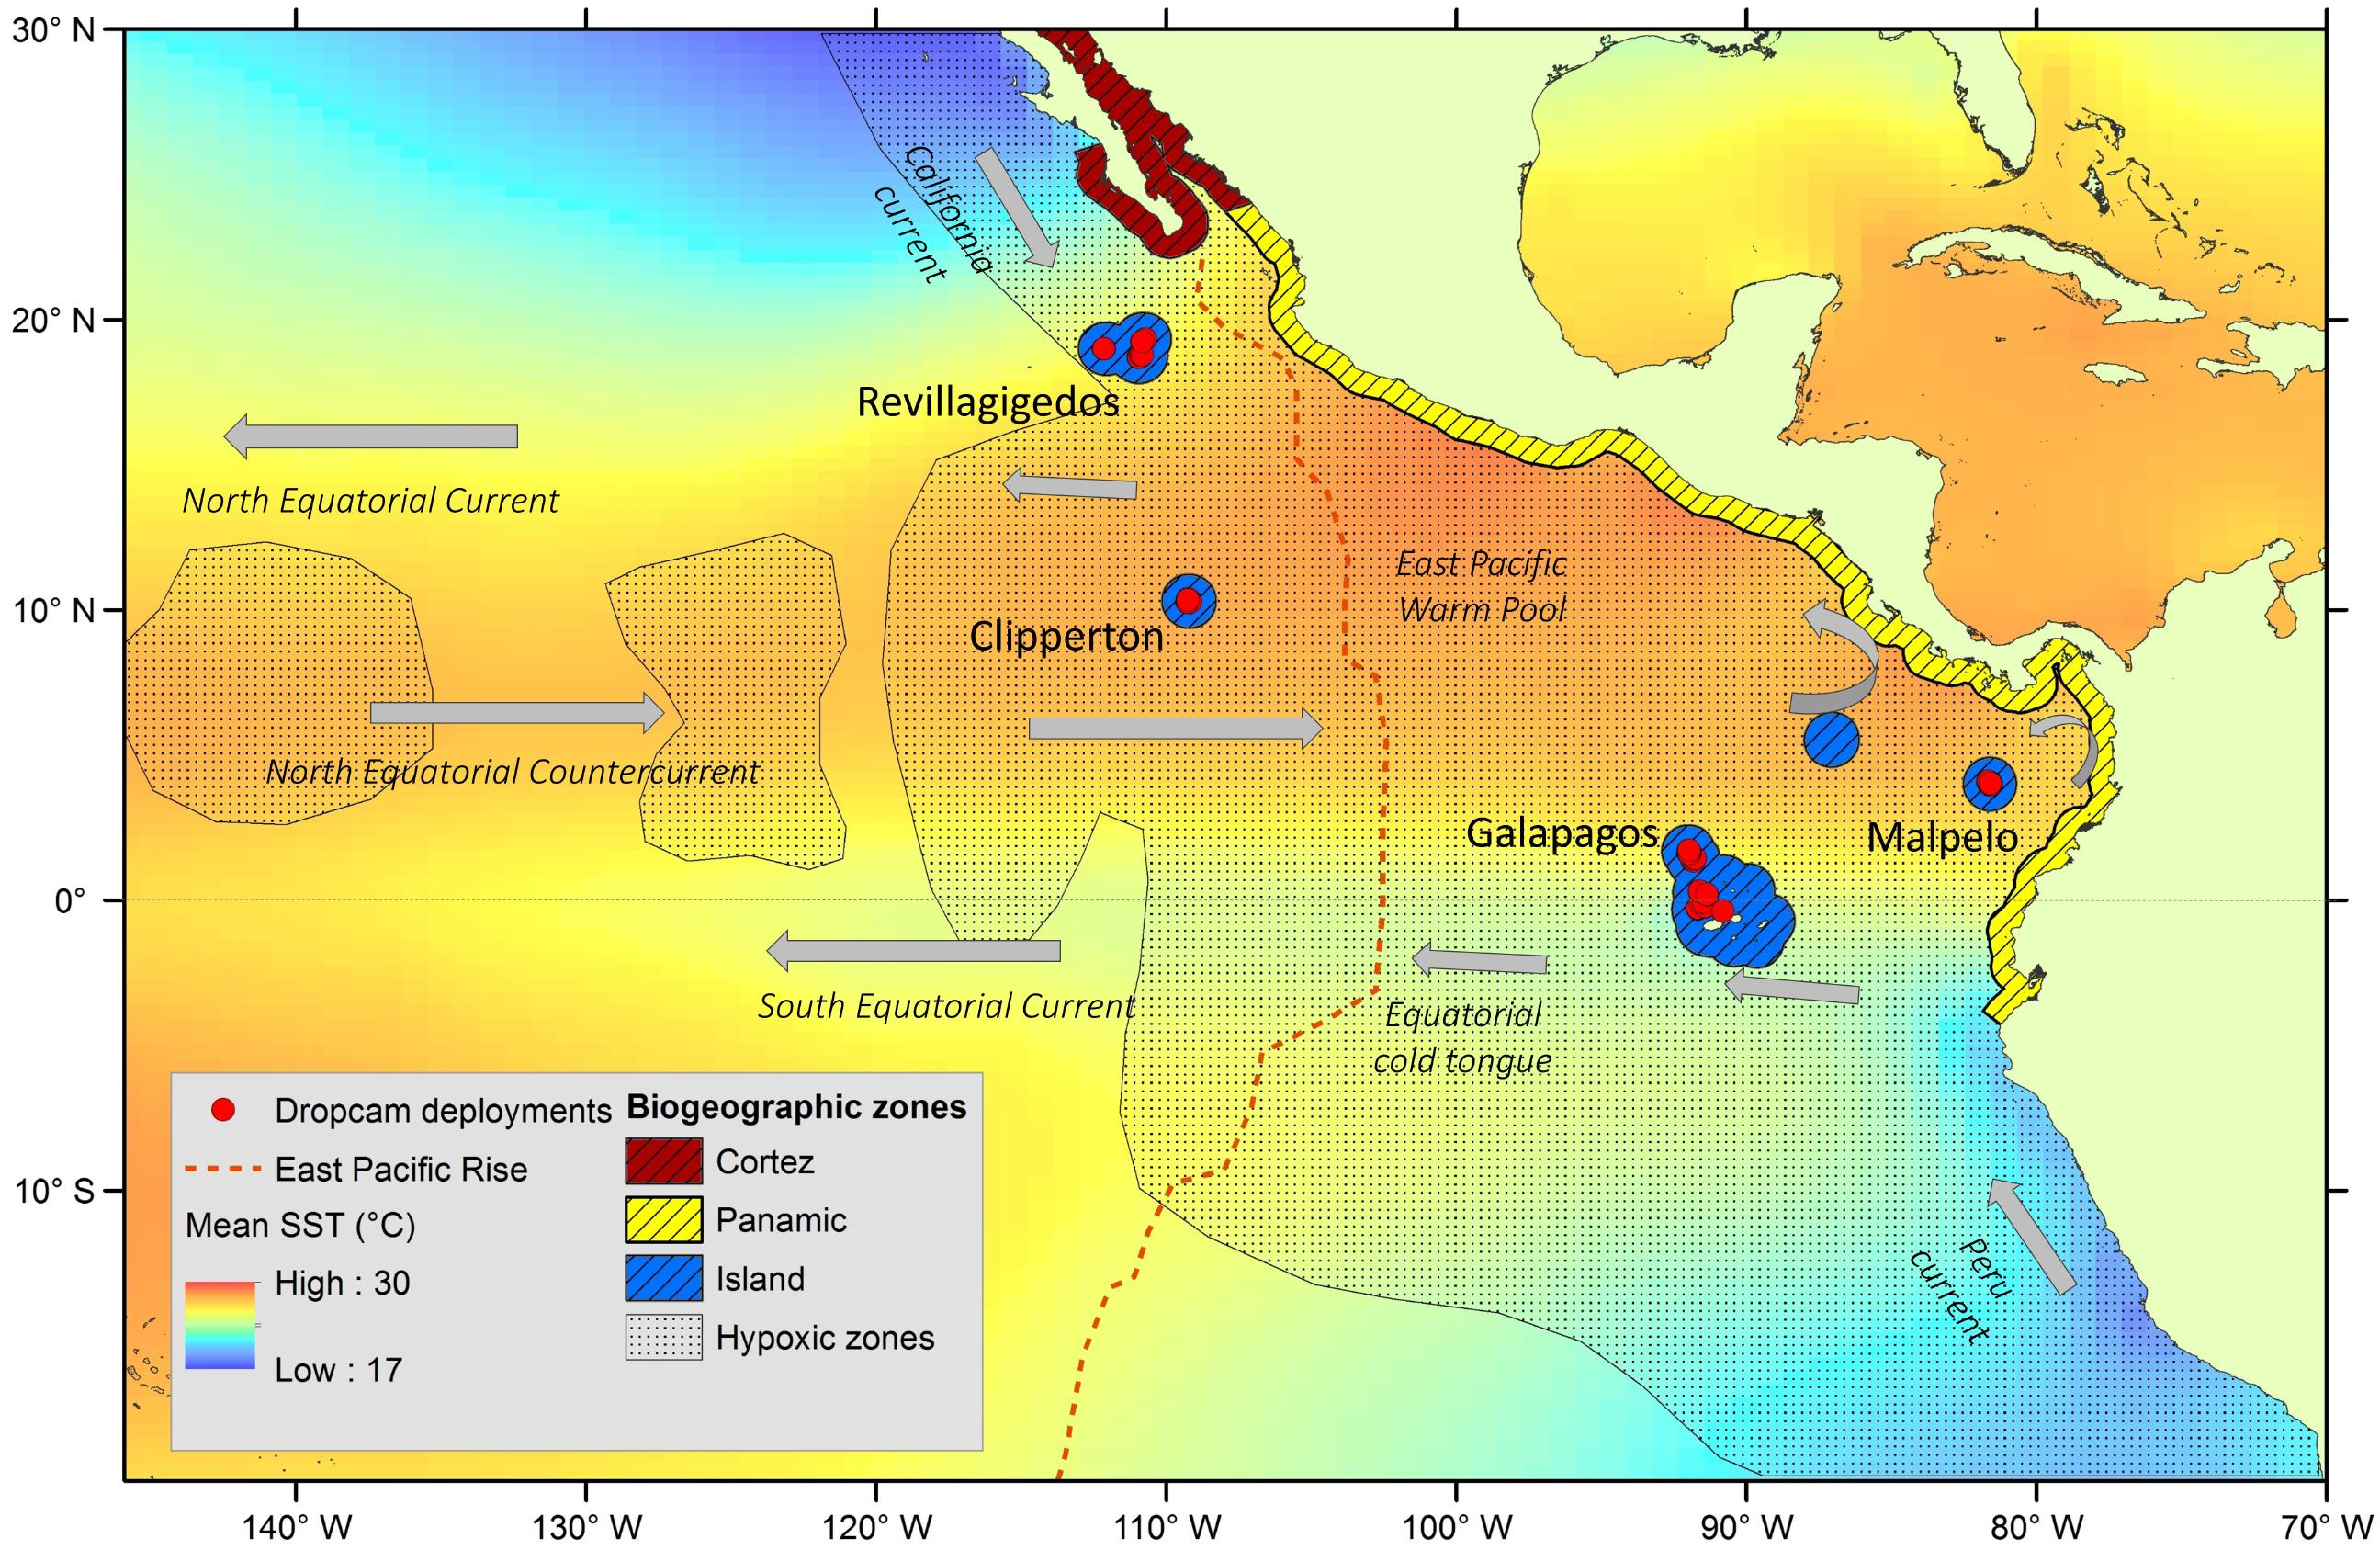 Frontiers | Patterns in Bathyal Demersal Biodiversity and Community